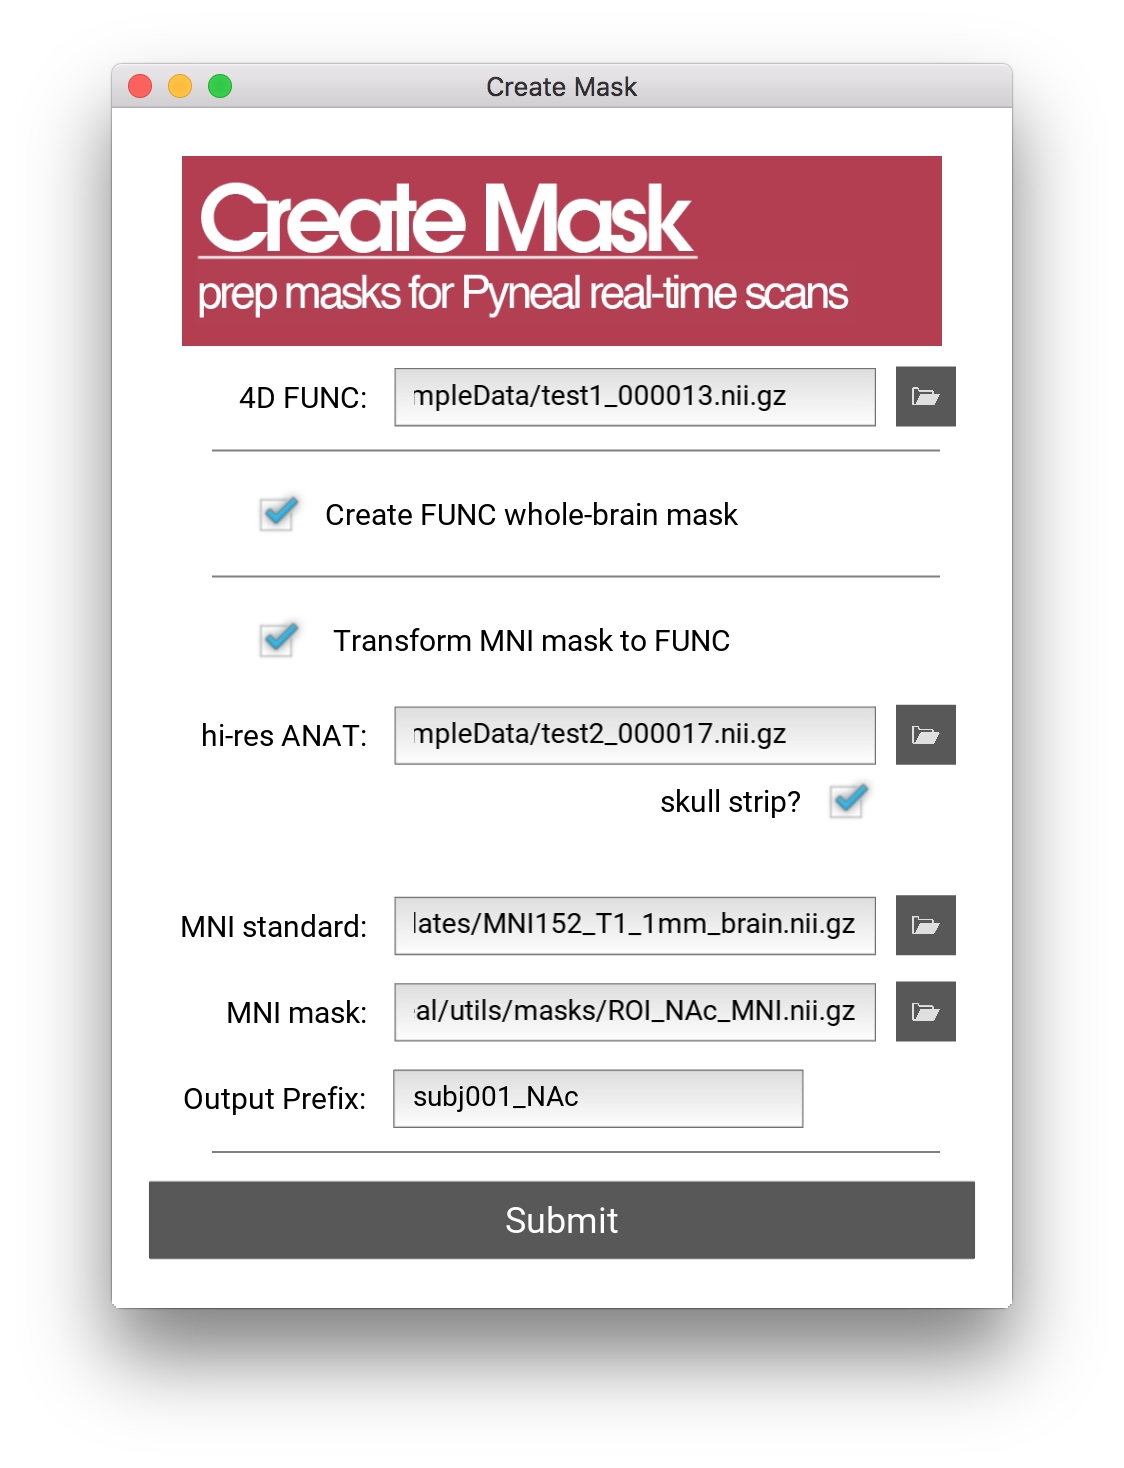 Creating Masks - Pyneal Docs